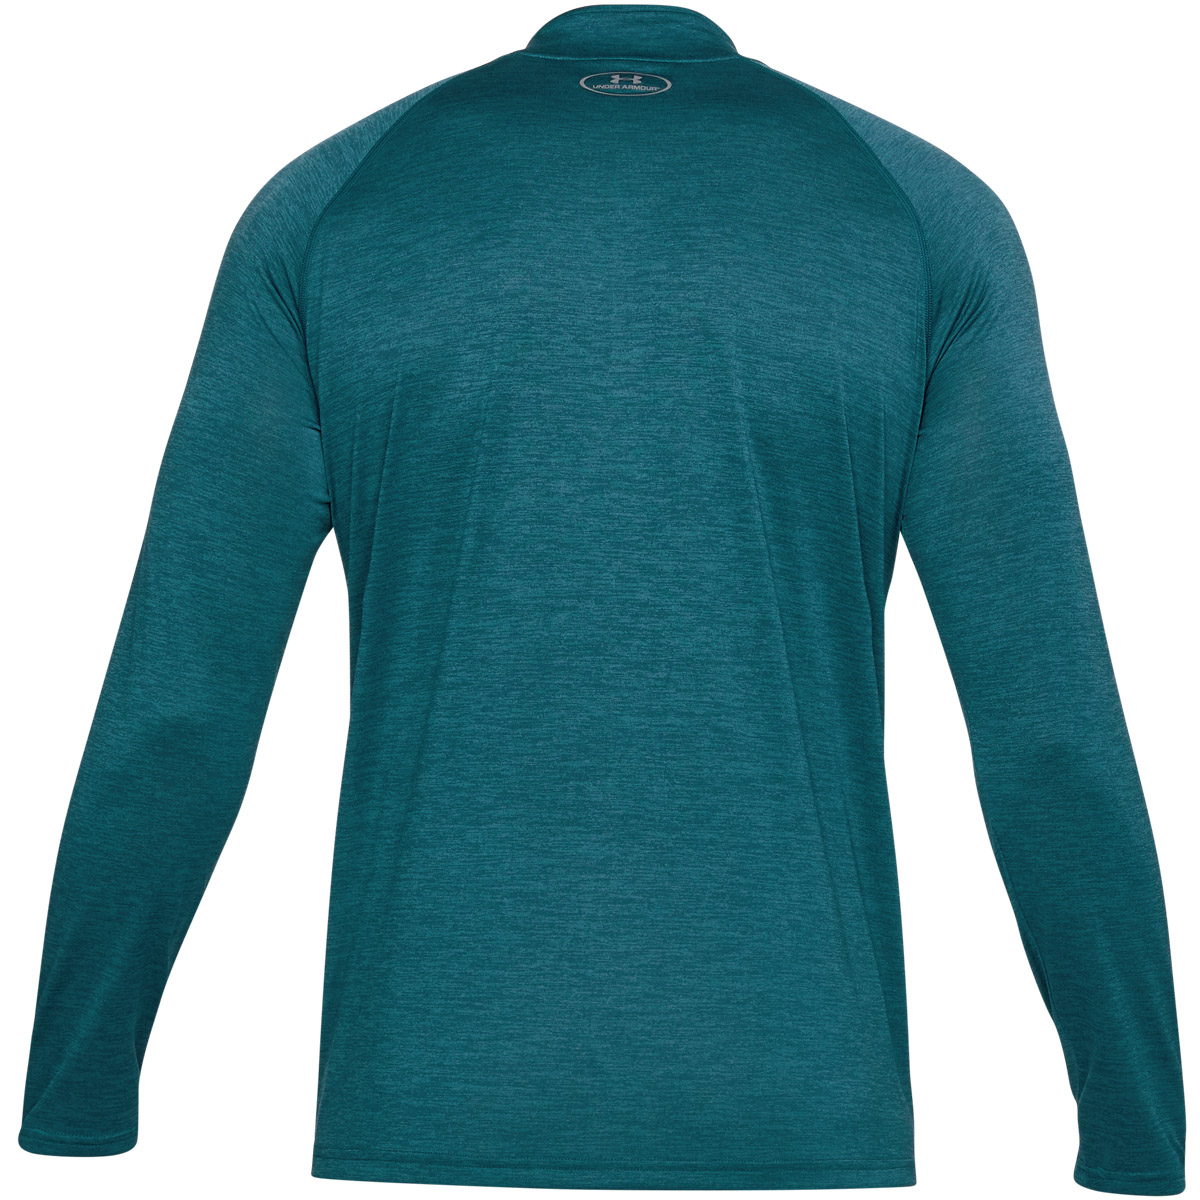 Under-Armour-Mens-UA-Tech-1-4-Zip-Long-Sleeve-Top-Workout-Layer-27-OFF-RRP thumbnail 86